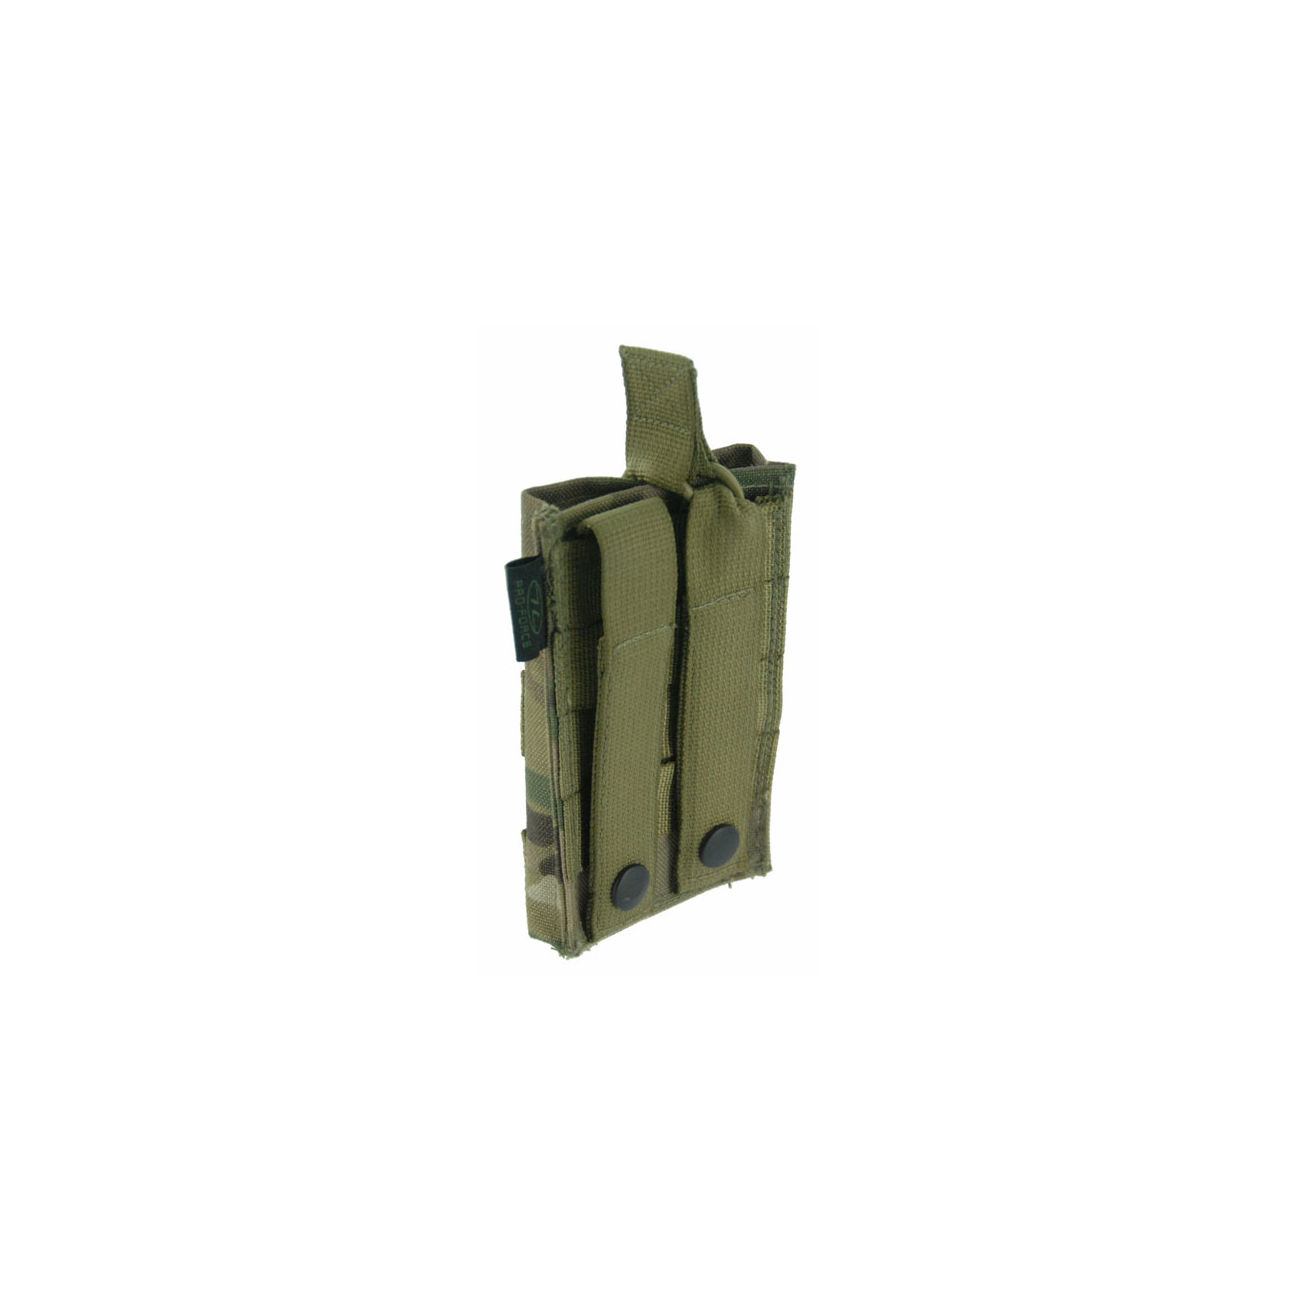 Highlander Pro-Force Magazintasche Molle single offen M4 M16 multicam 1